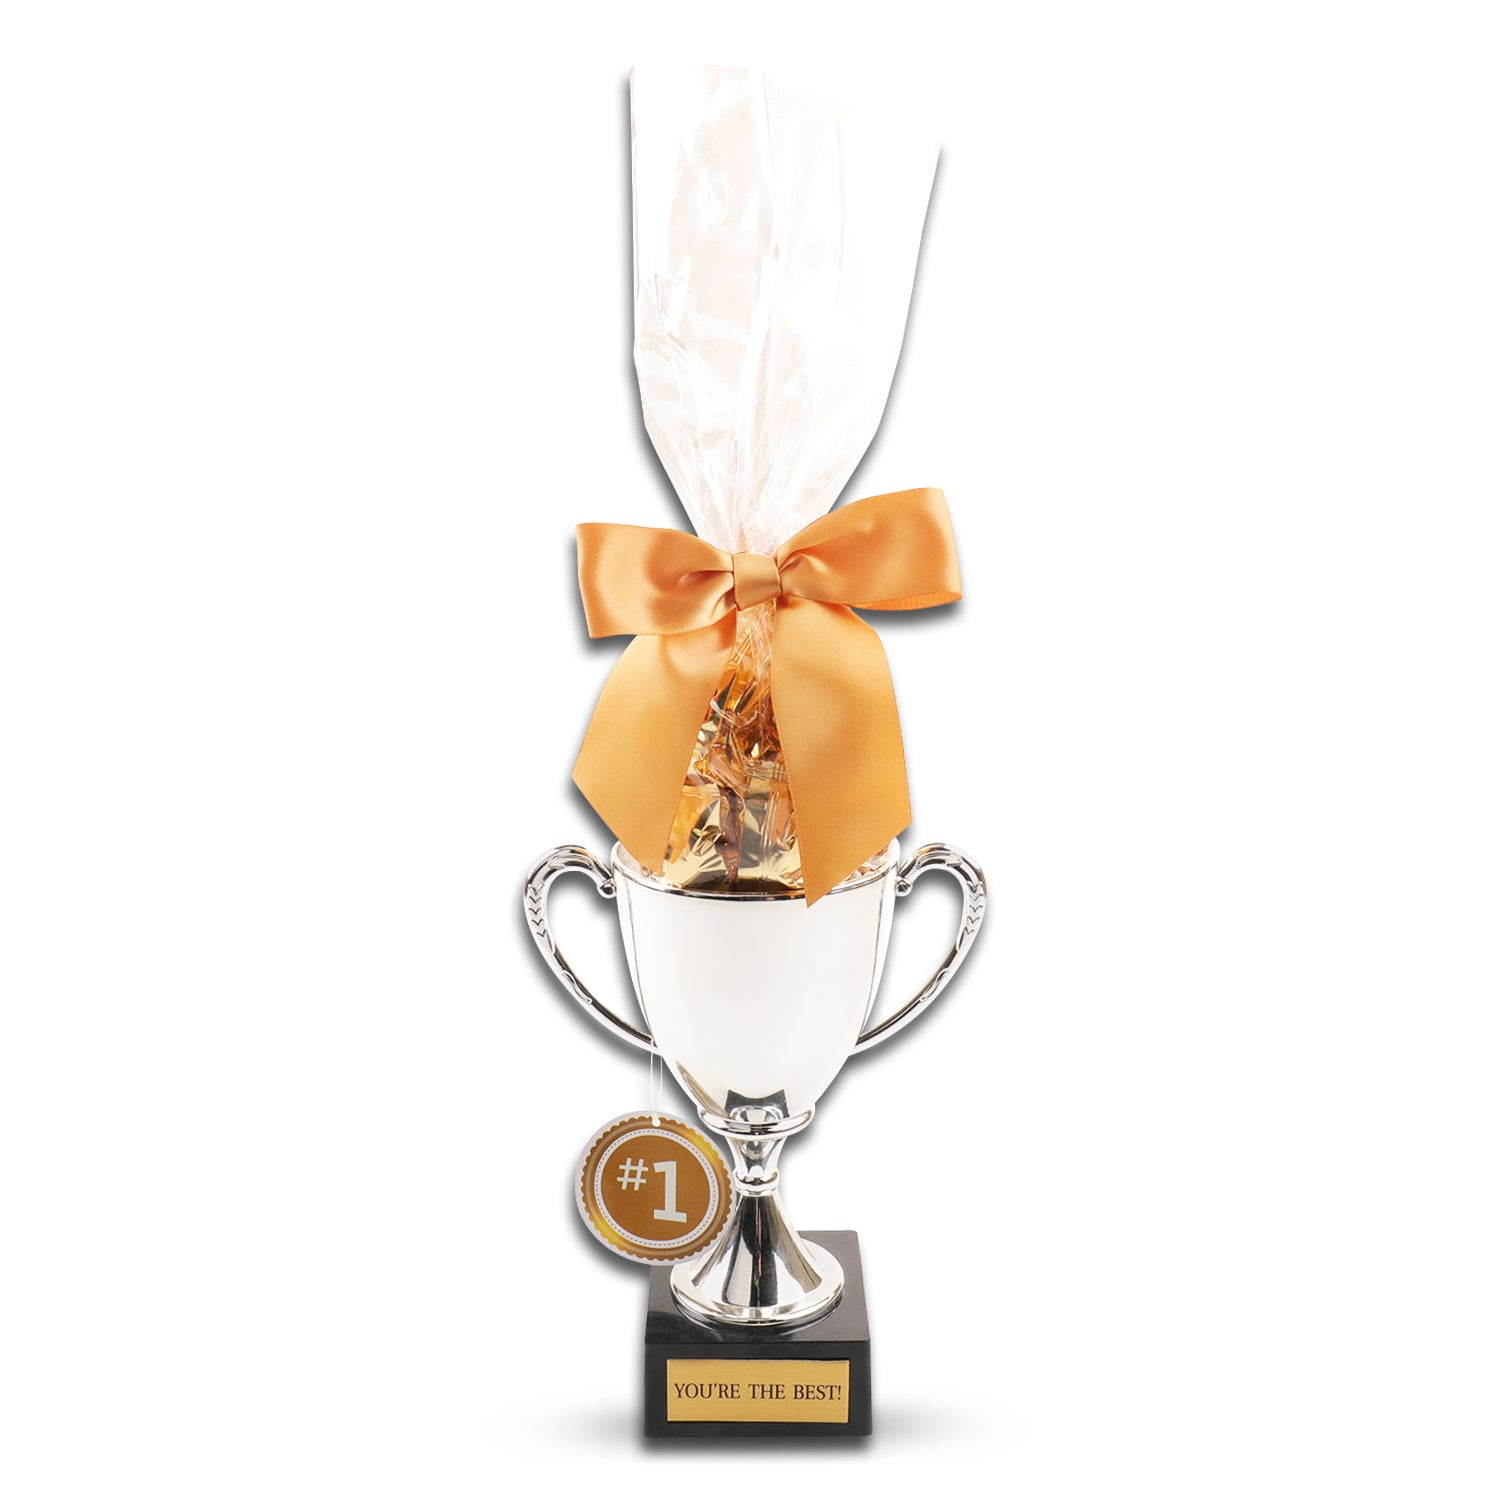 You're #1 Trophy Gift